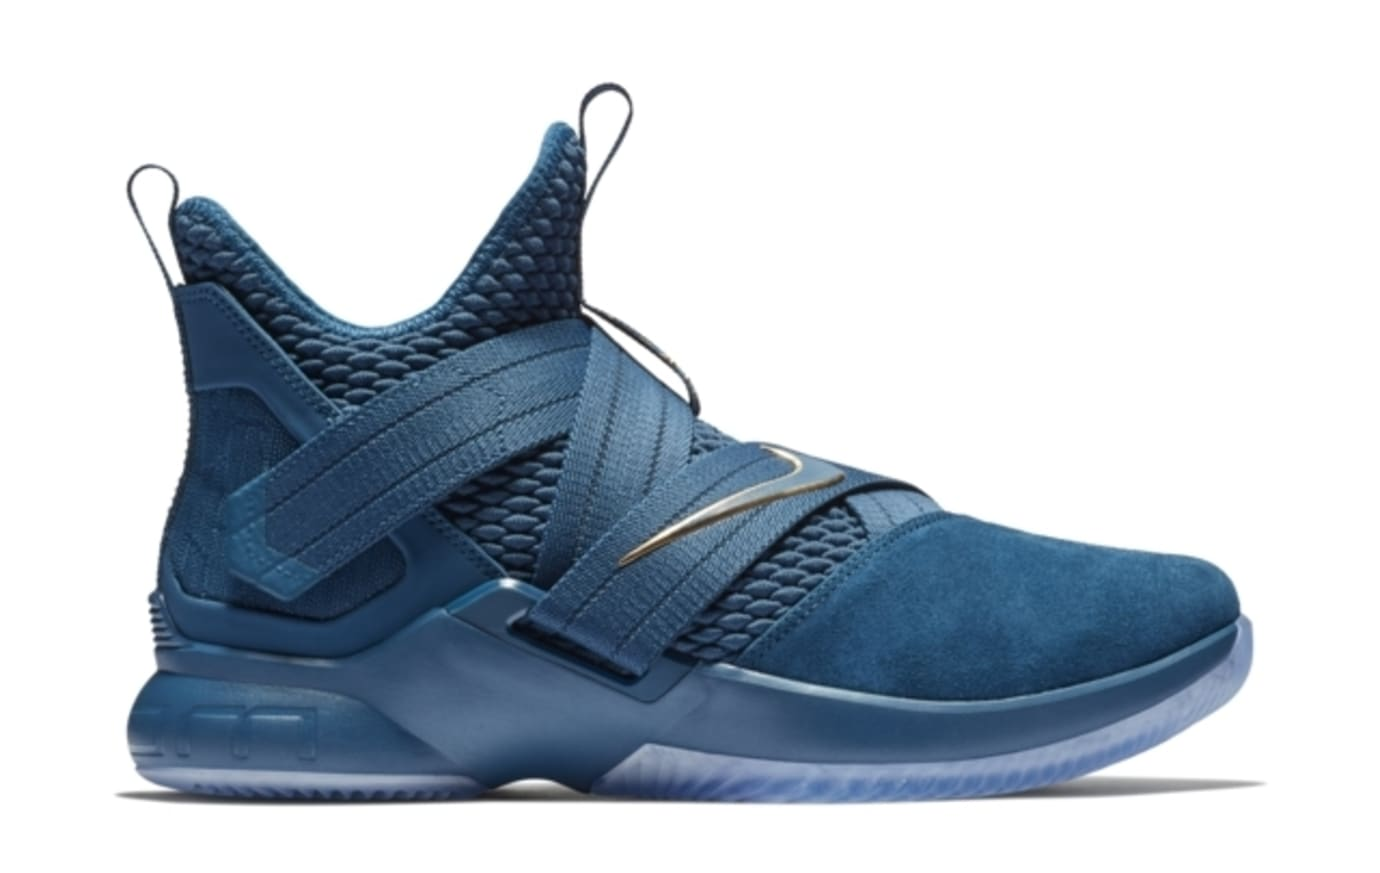 48a554aedd6 Nike LeBron Soldier 12  Agimat  AO4054-500 Release Date